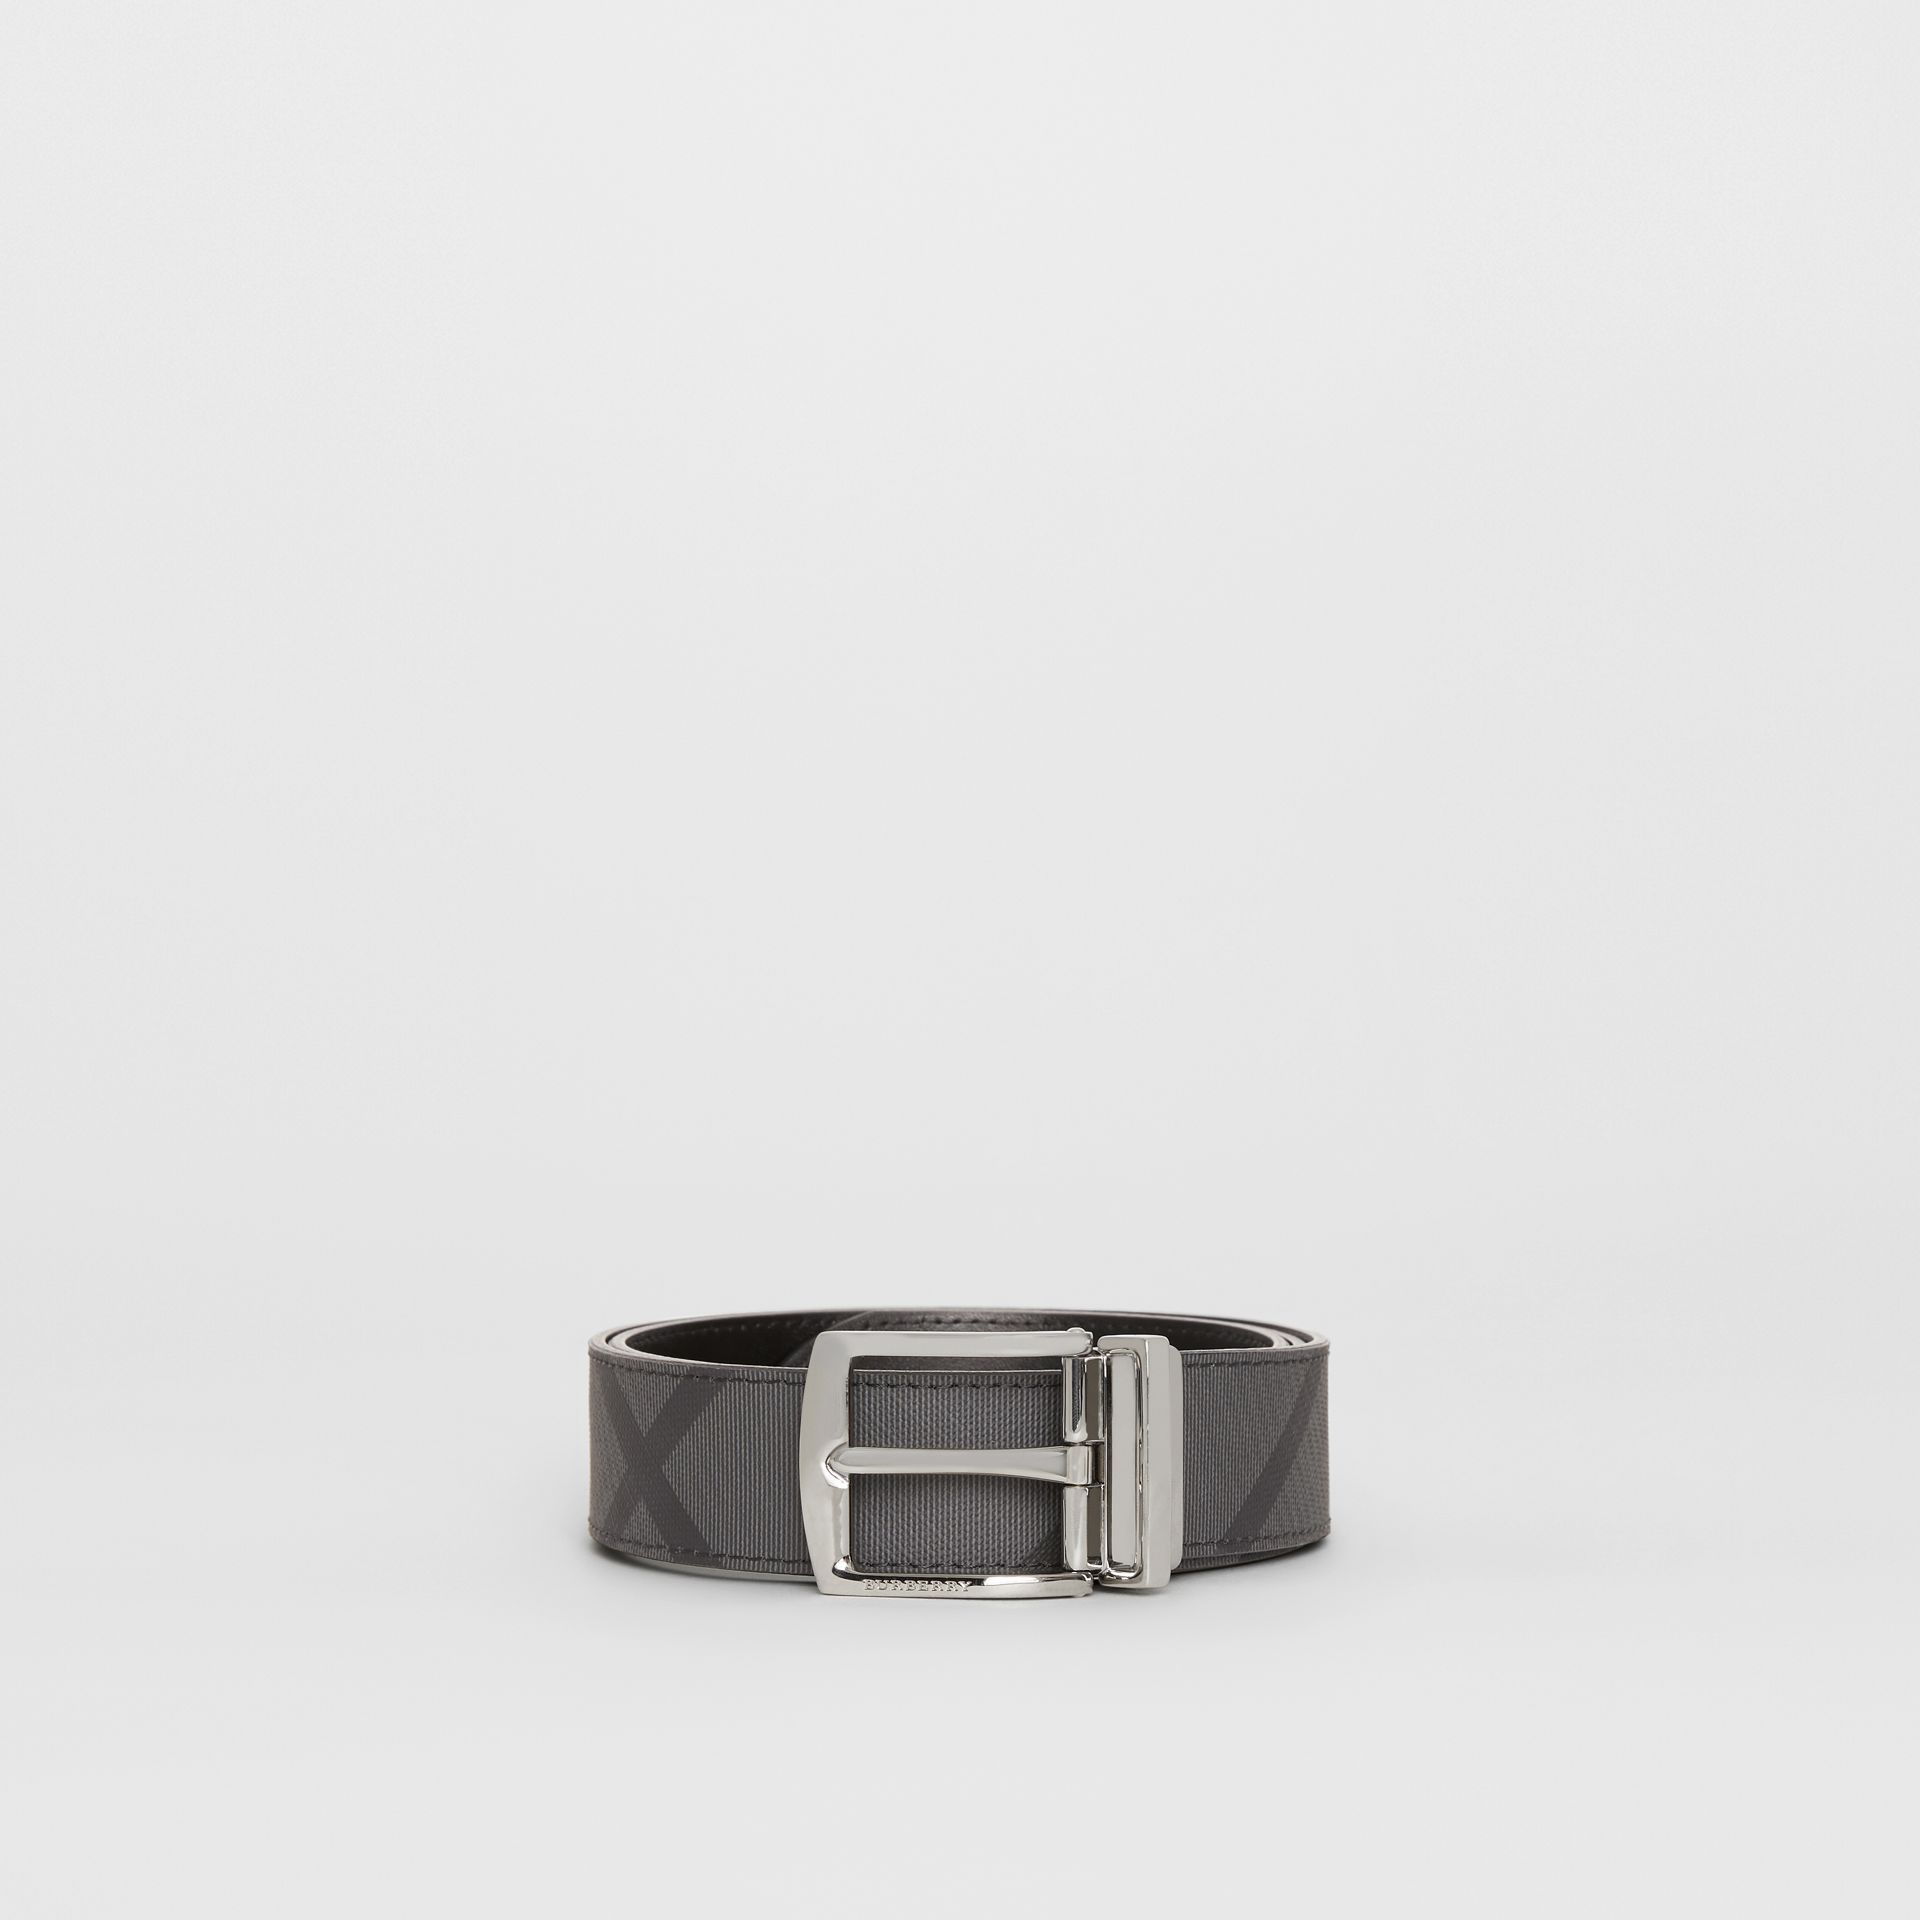 Burberry Charcoal/Black Reversible London Check and Leather Belt